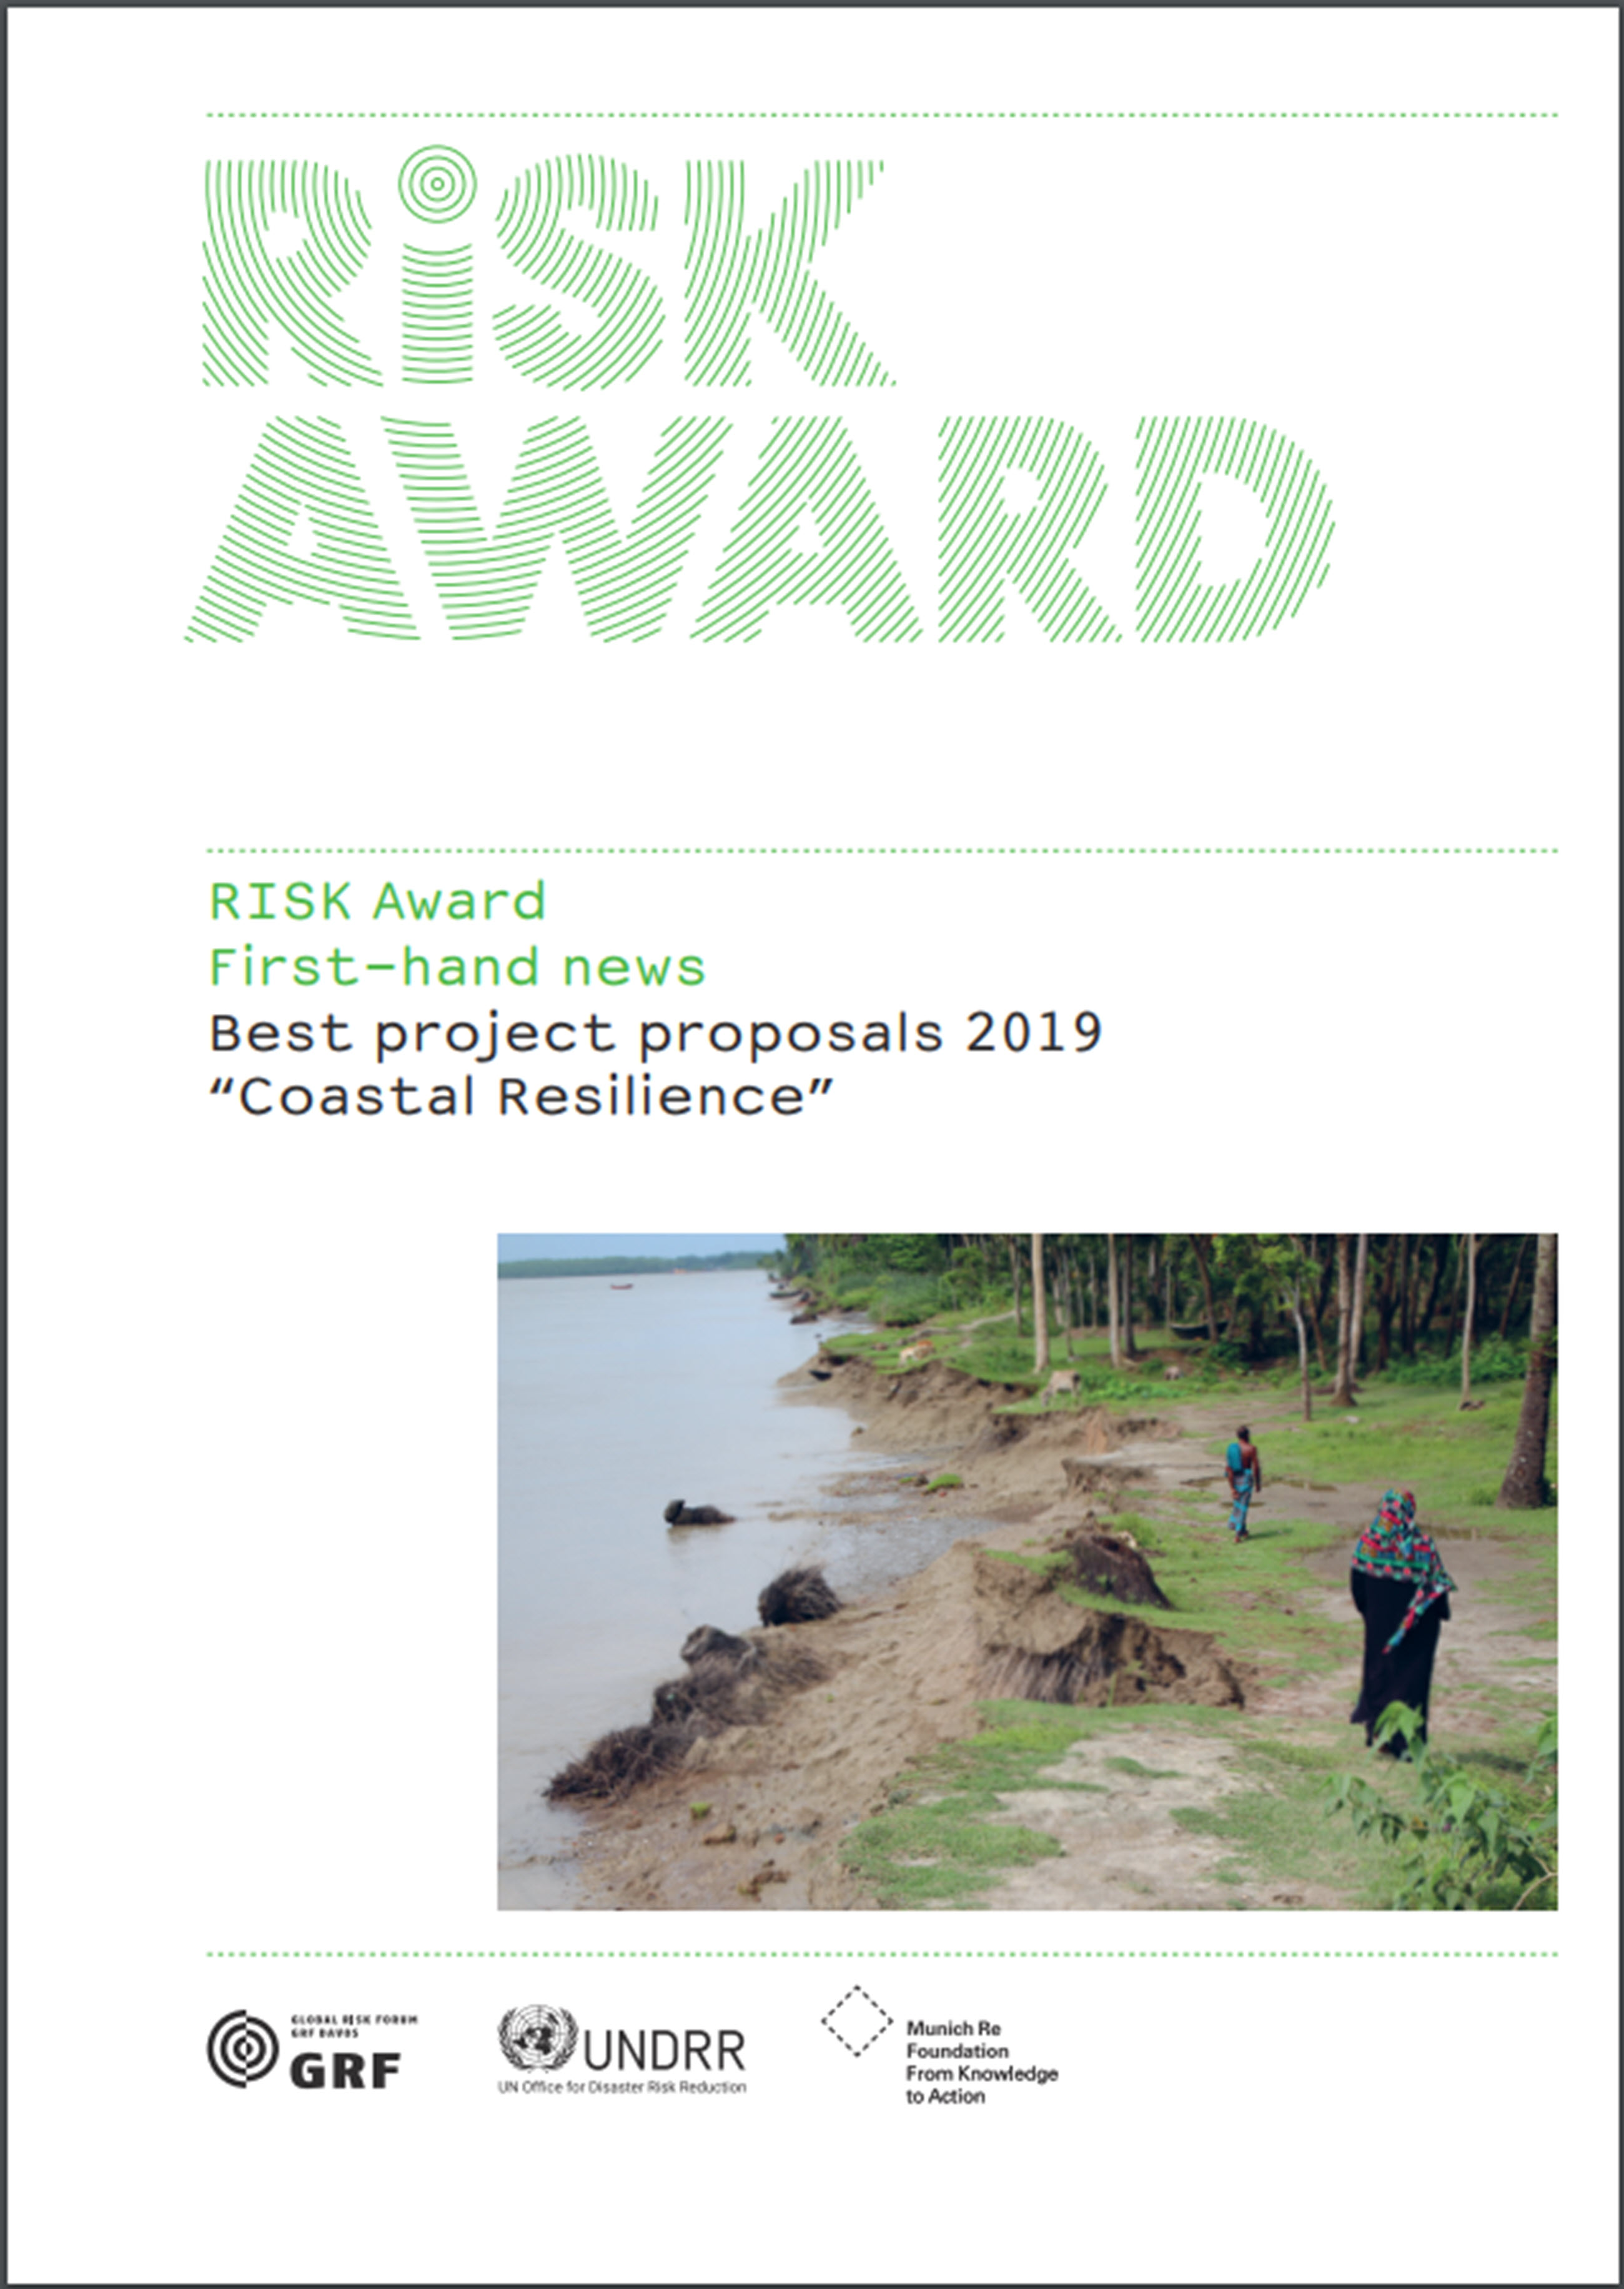 2019_RISK Award_First-hand news